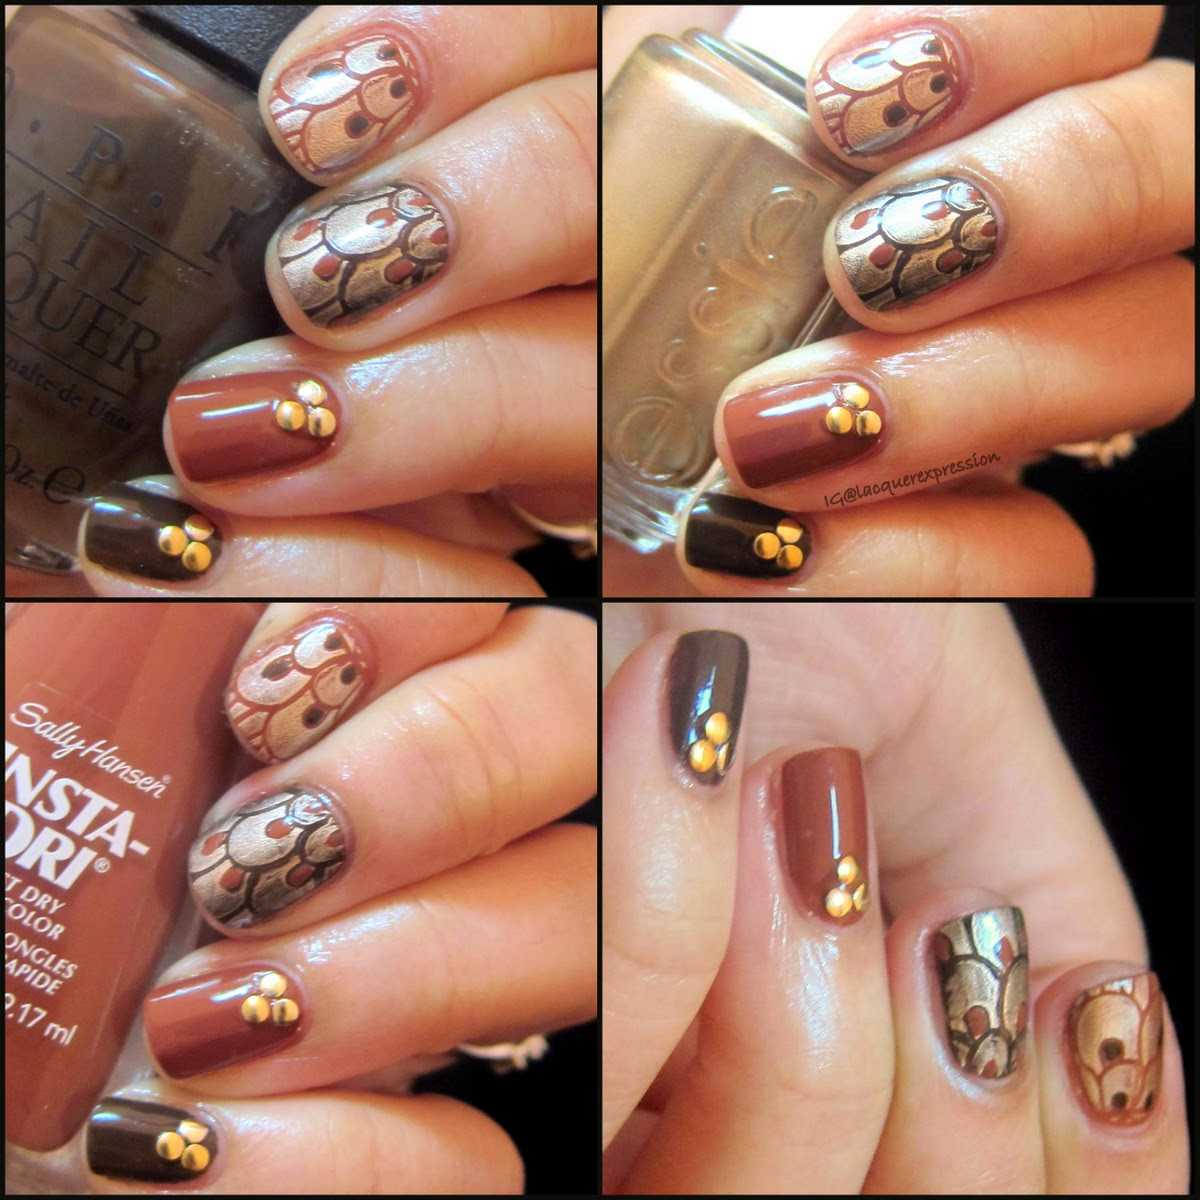 Thanksgiving Feathers nail art using O.P.I. Suzy loves cowboys, essie good as gold, sally hansen moracc-go, and Pueen encore stamping plate